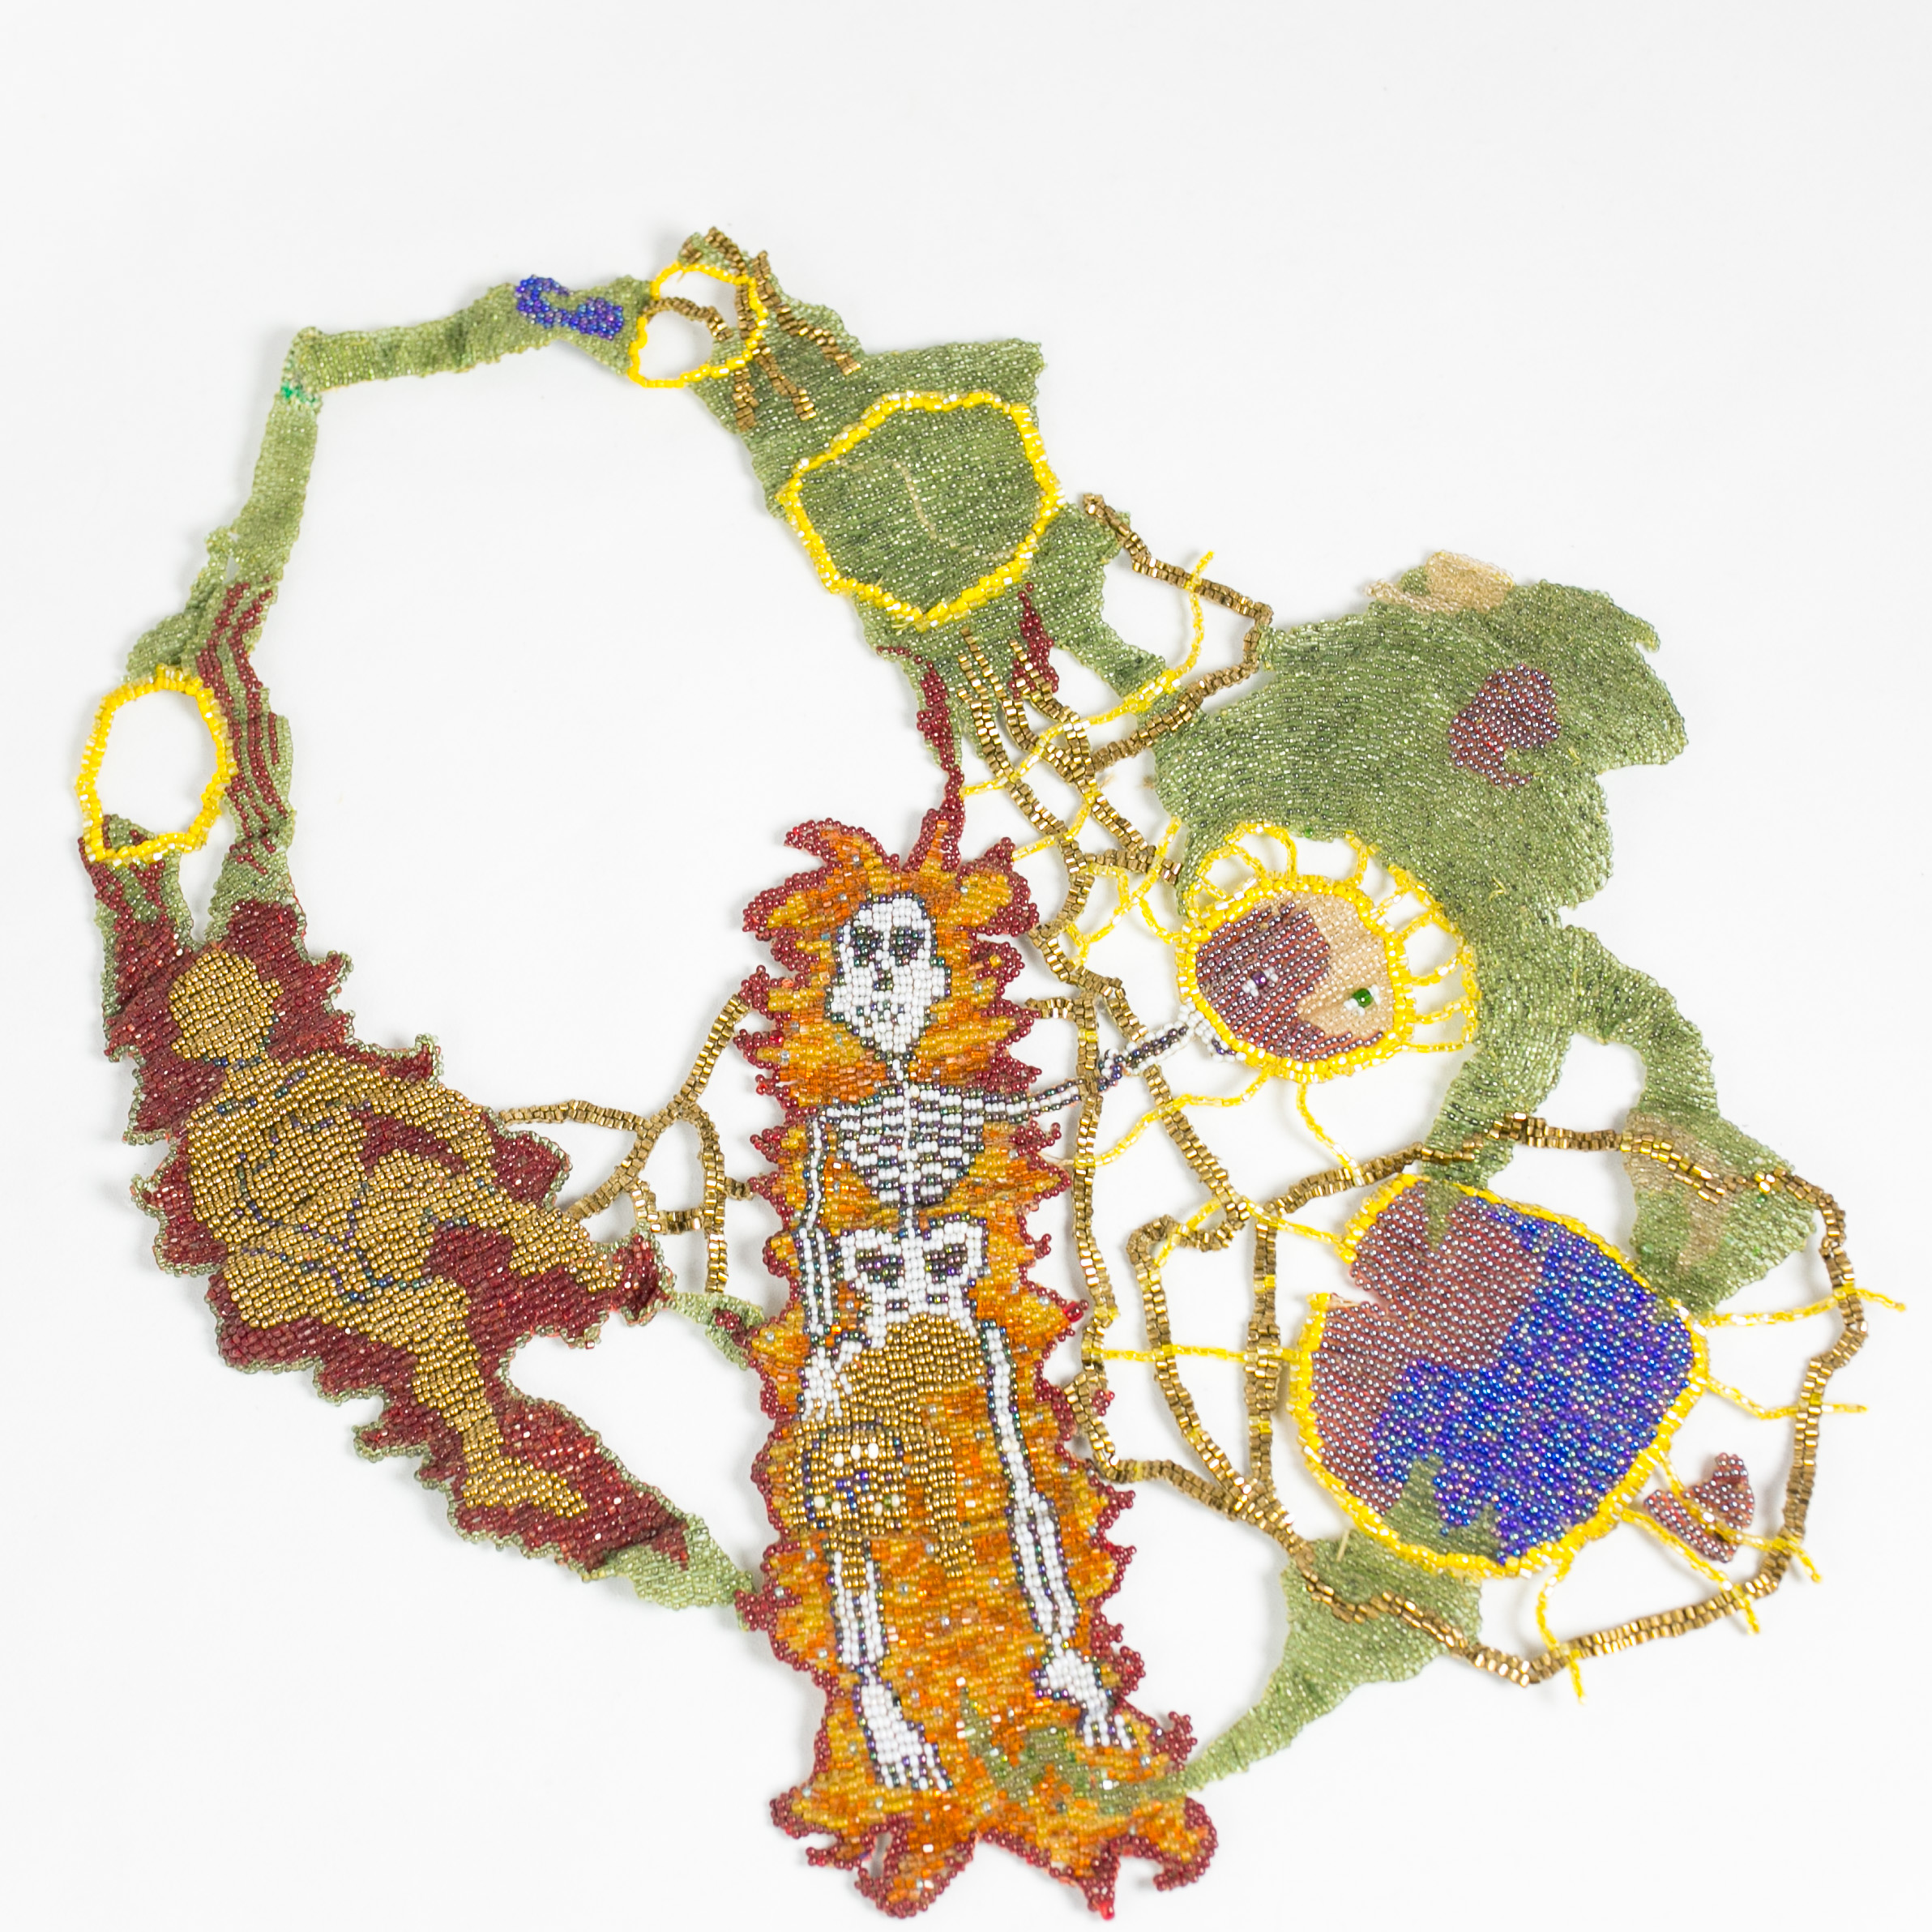 Joyce Scott,  Flaming Skeleton #2 , 1993, glass beads and thread. Courtesy of Elsie Michie.